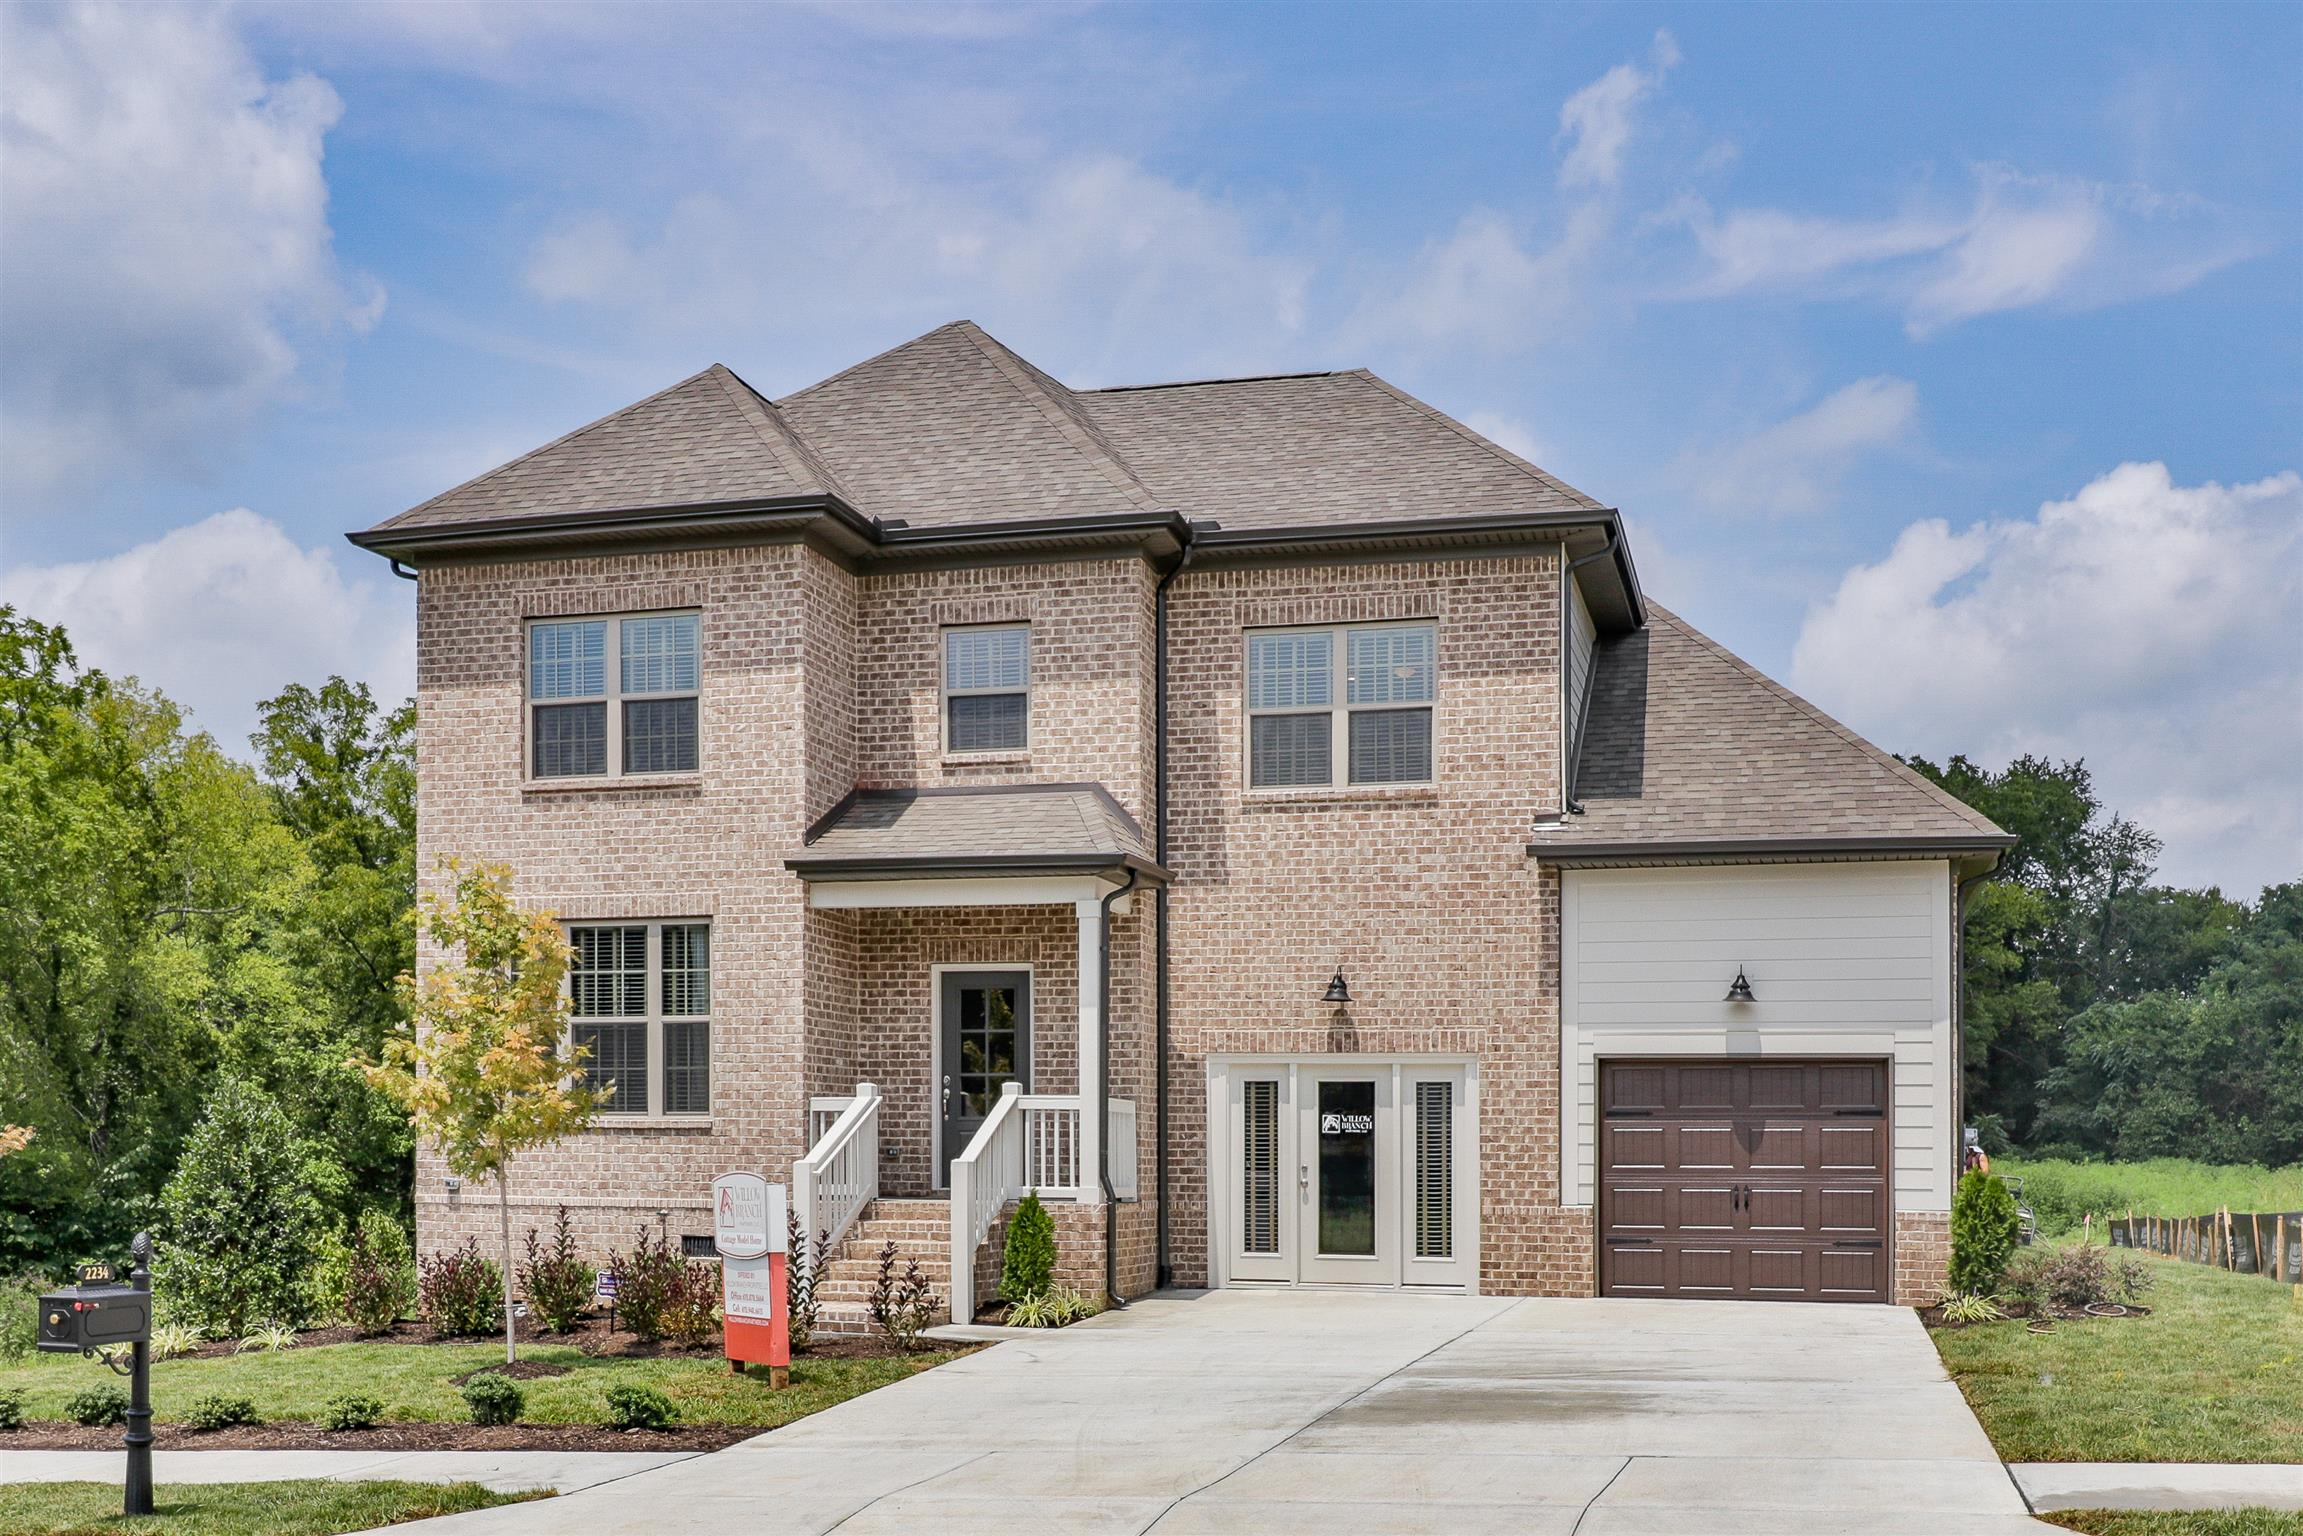 2234 Chaucer Park Ln - 1011, Thompsons Station, TN 37179 - Thompsons Station, TN real estate listing